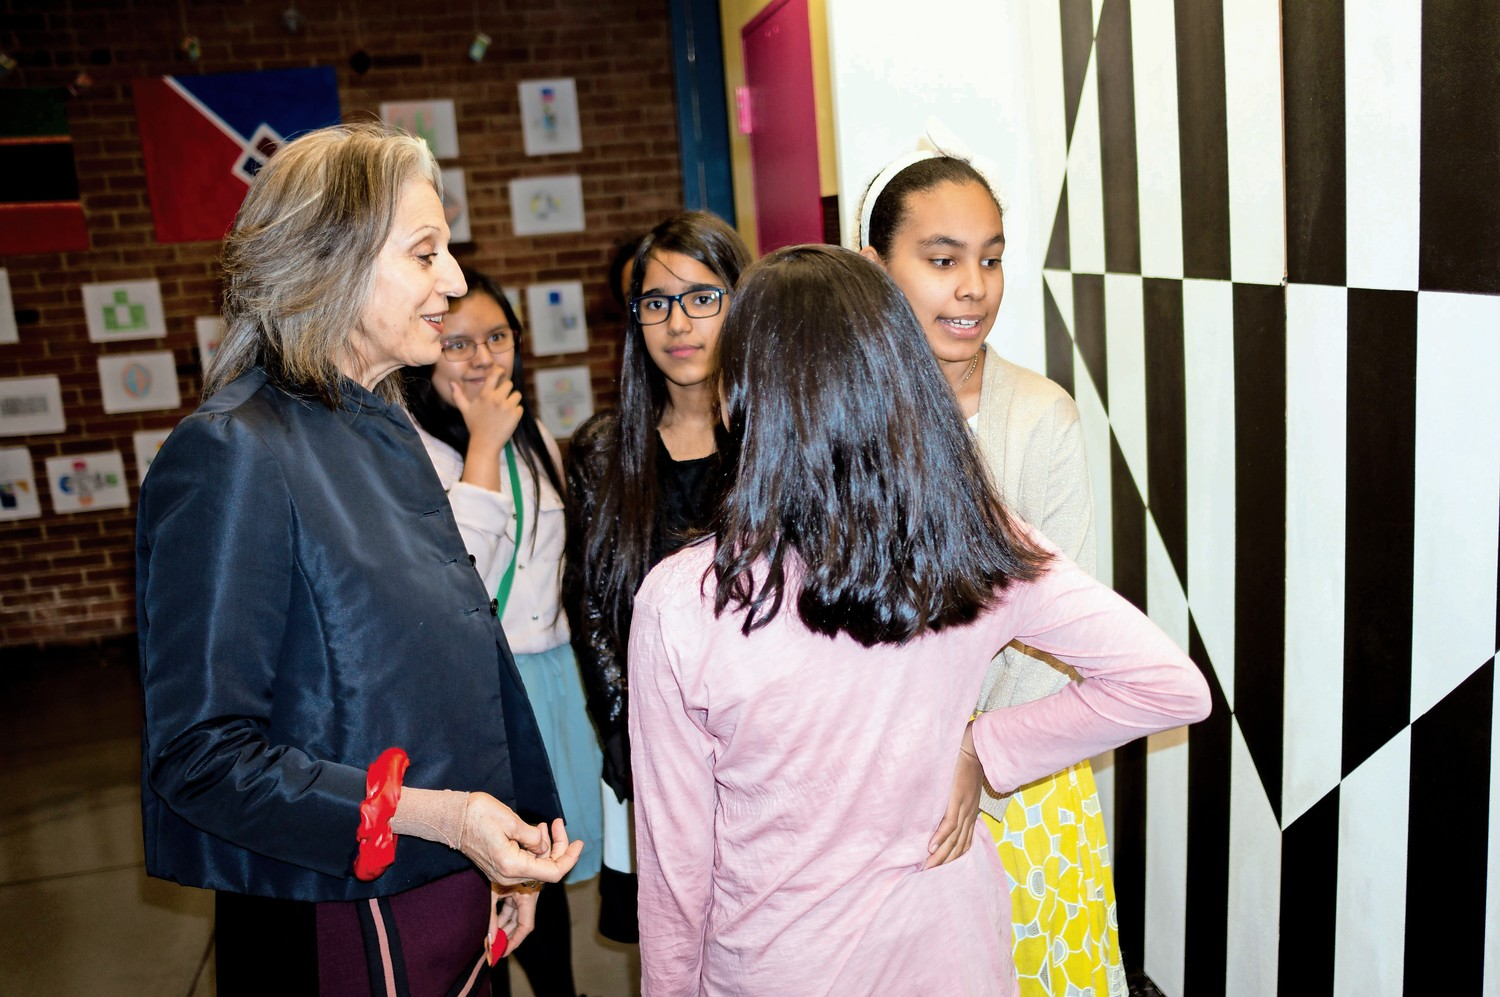 Ruth Lande Shuman, the founder of Publicolor, left, talks to students at M.S. 244 in front of a mural inspired by the work of Carmen Herrera. Publicolor worked closely with students at M.S. 244 to reproduce one of Herrera's paintings.